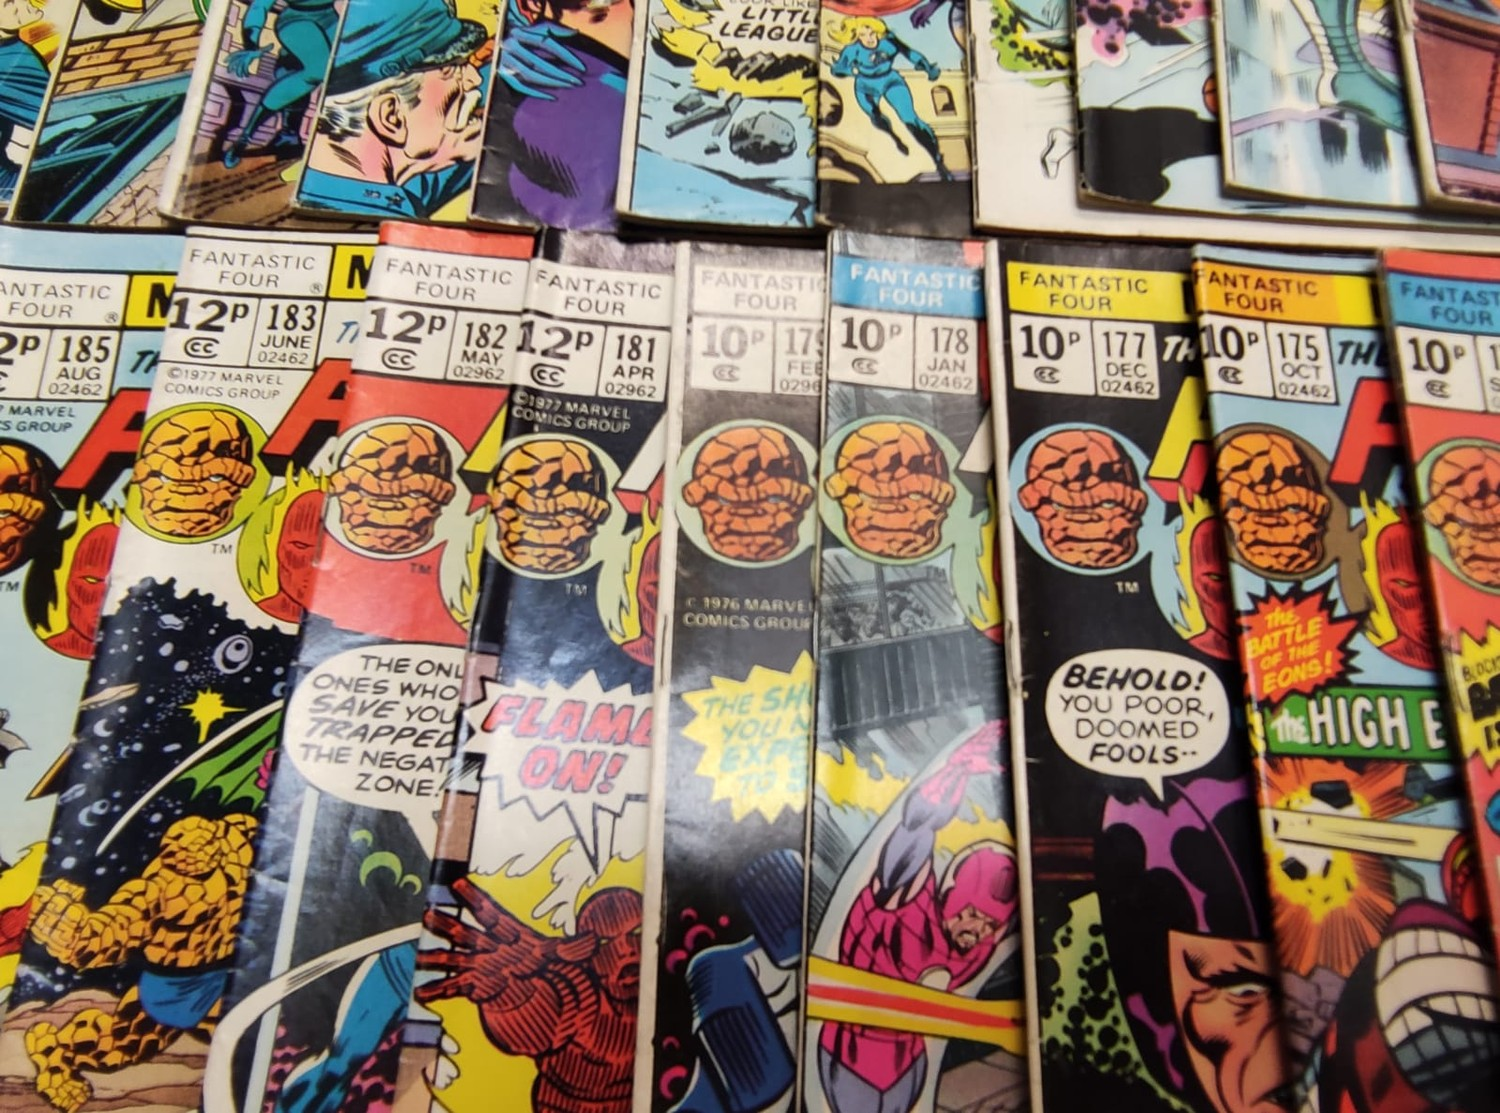 30x Marvel Fantastic four mid 1970s editions. Used, in good condition. - Image 8 of 17